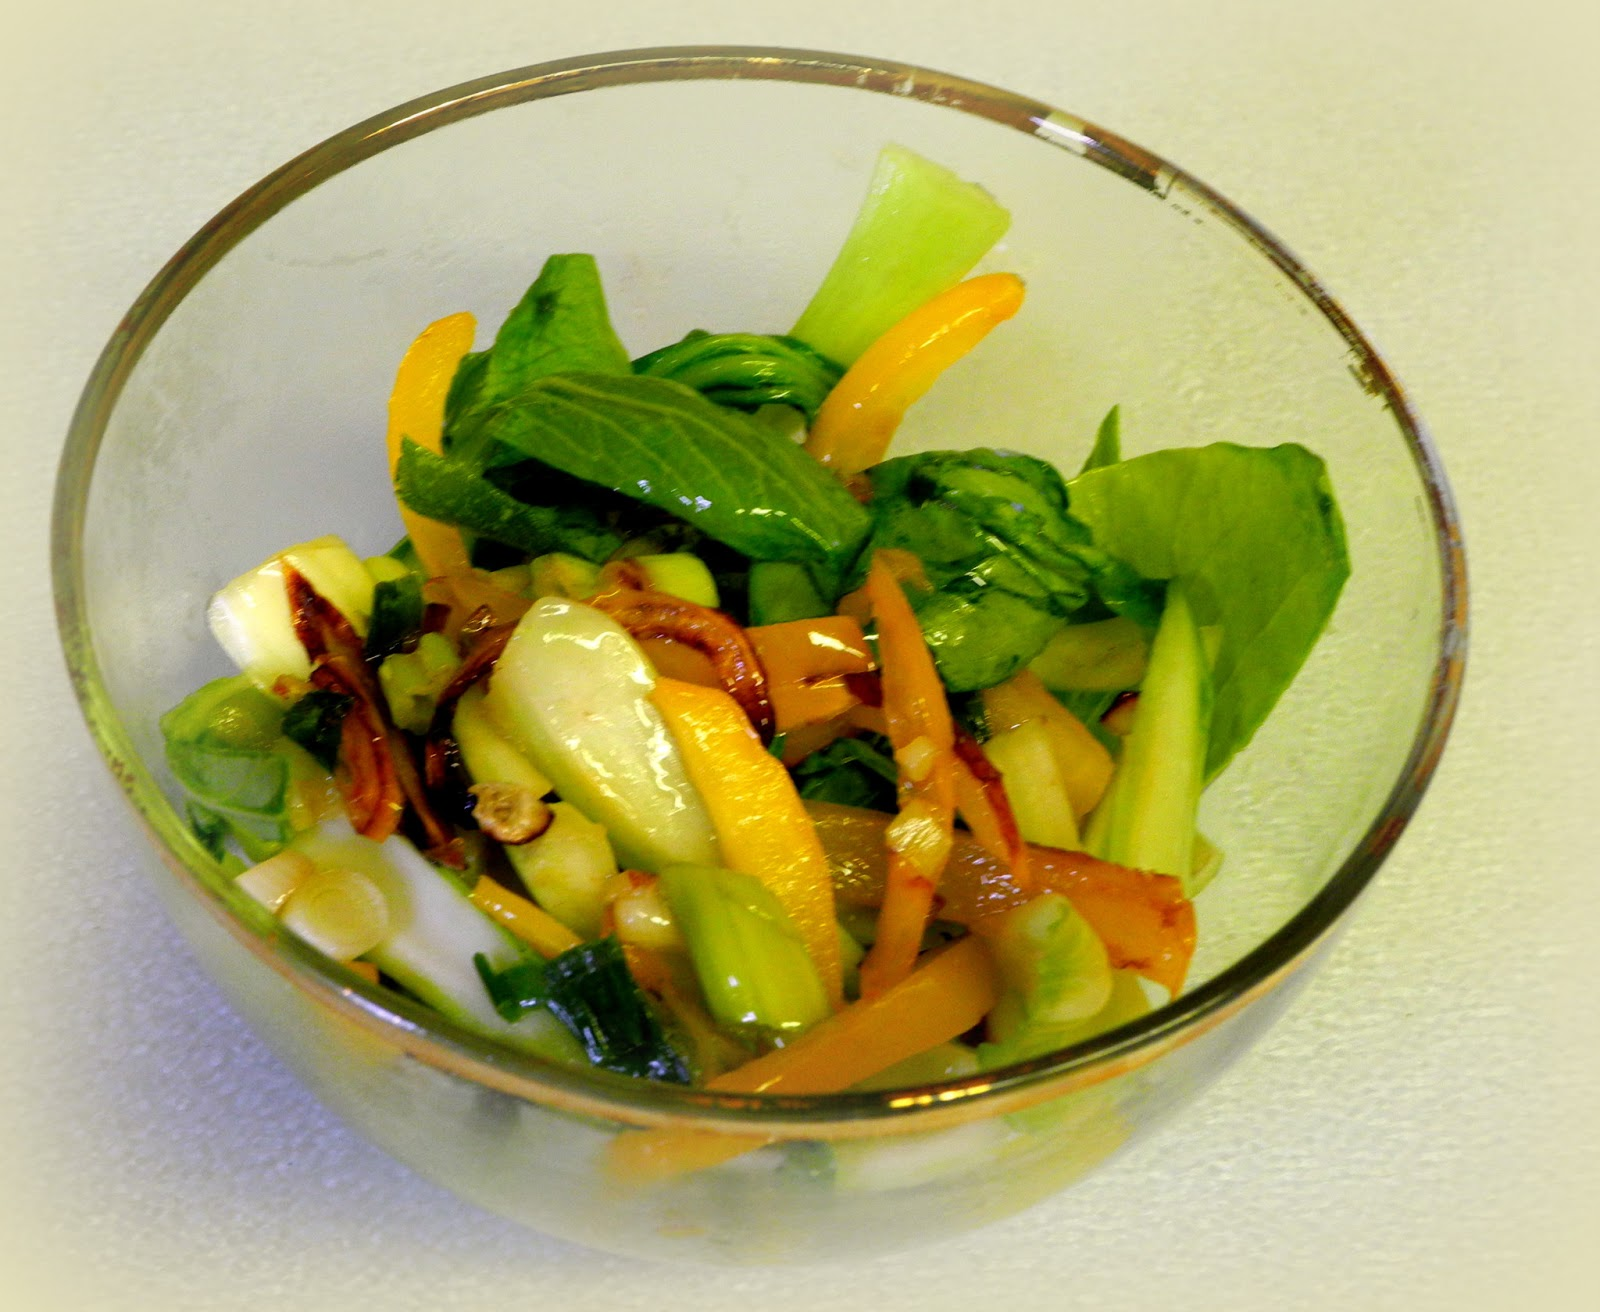 BIZZY BAKES: Bok Choy and Yellow Pepper